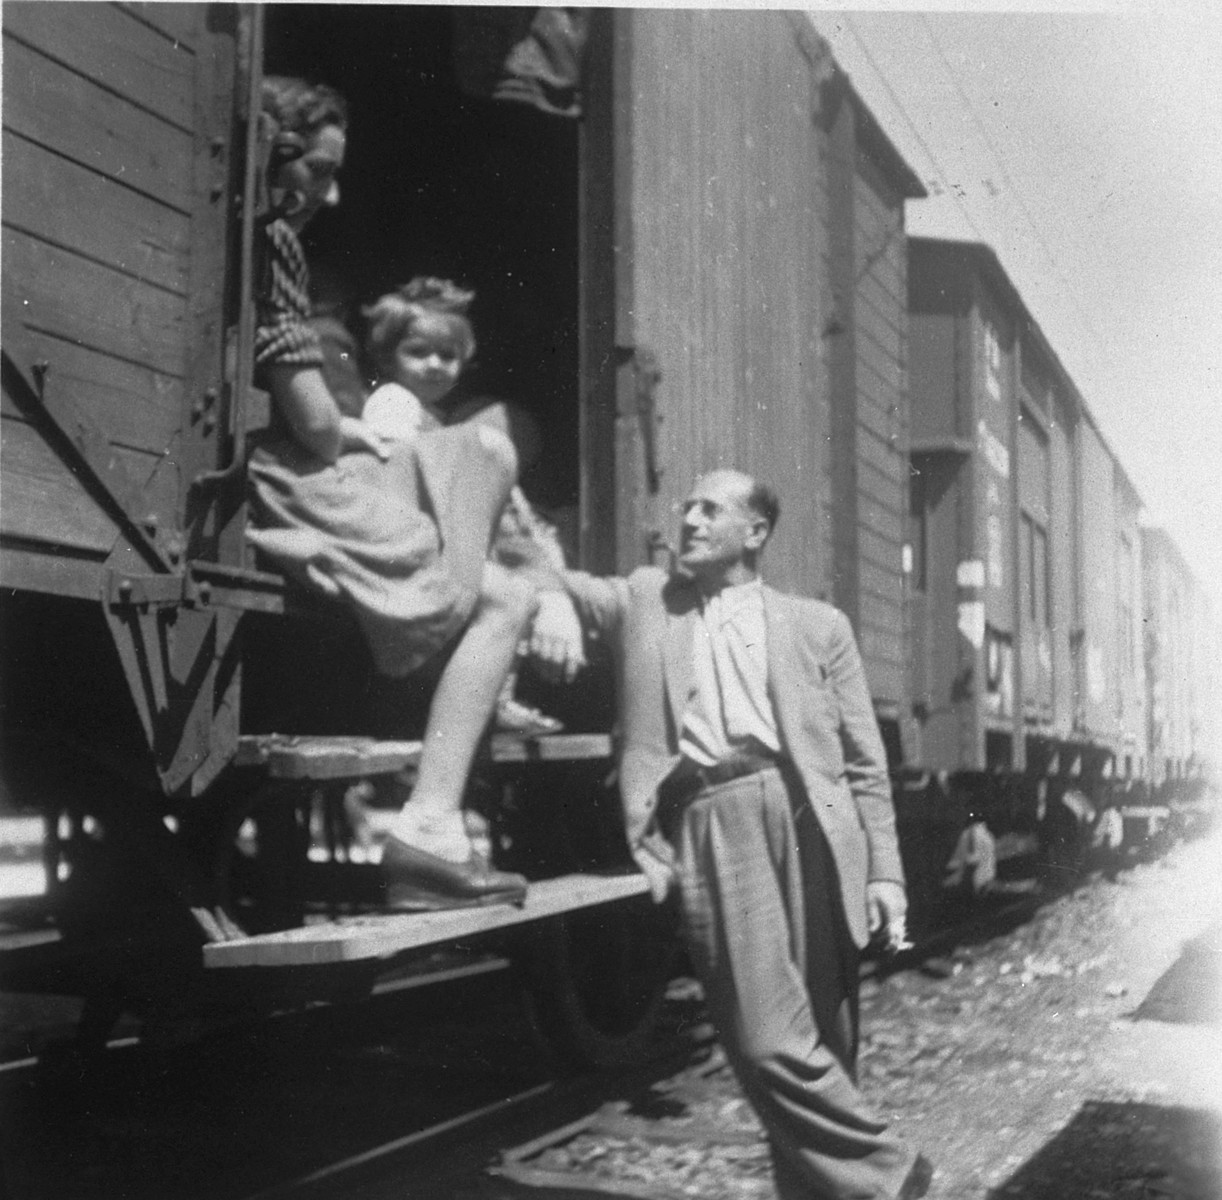 A Polish Jewish family poses by the entrance to a cattle car as they prepare to leave Hungary for the west.  Pictured are Mania and Jeanine Ament.  [The man may be Yona Stern.]